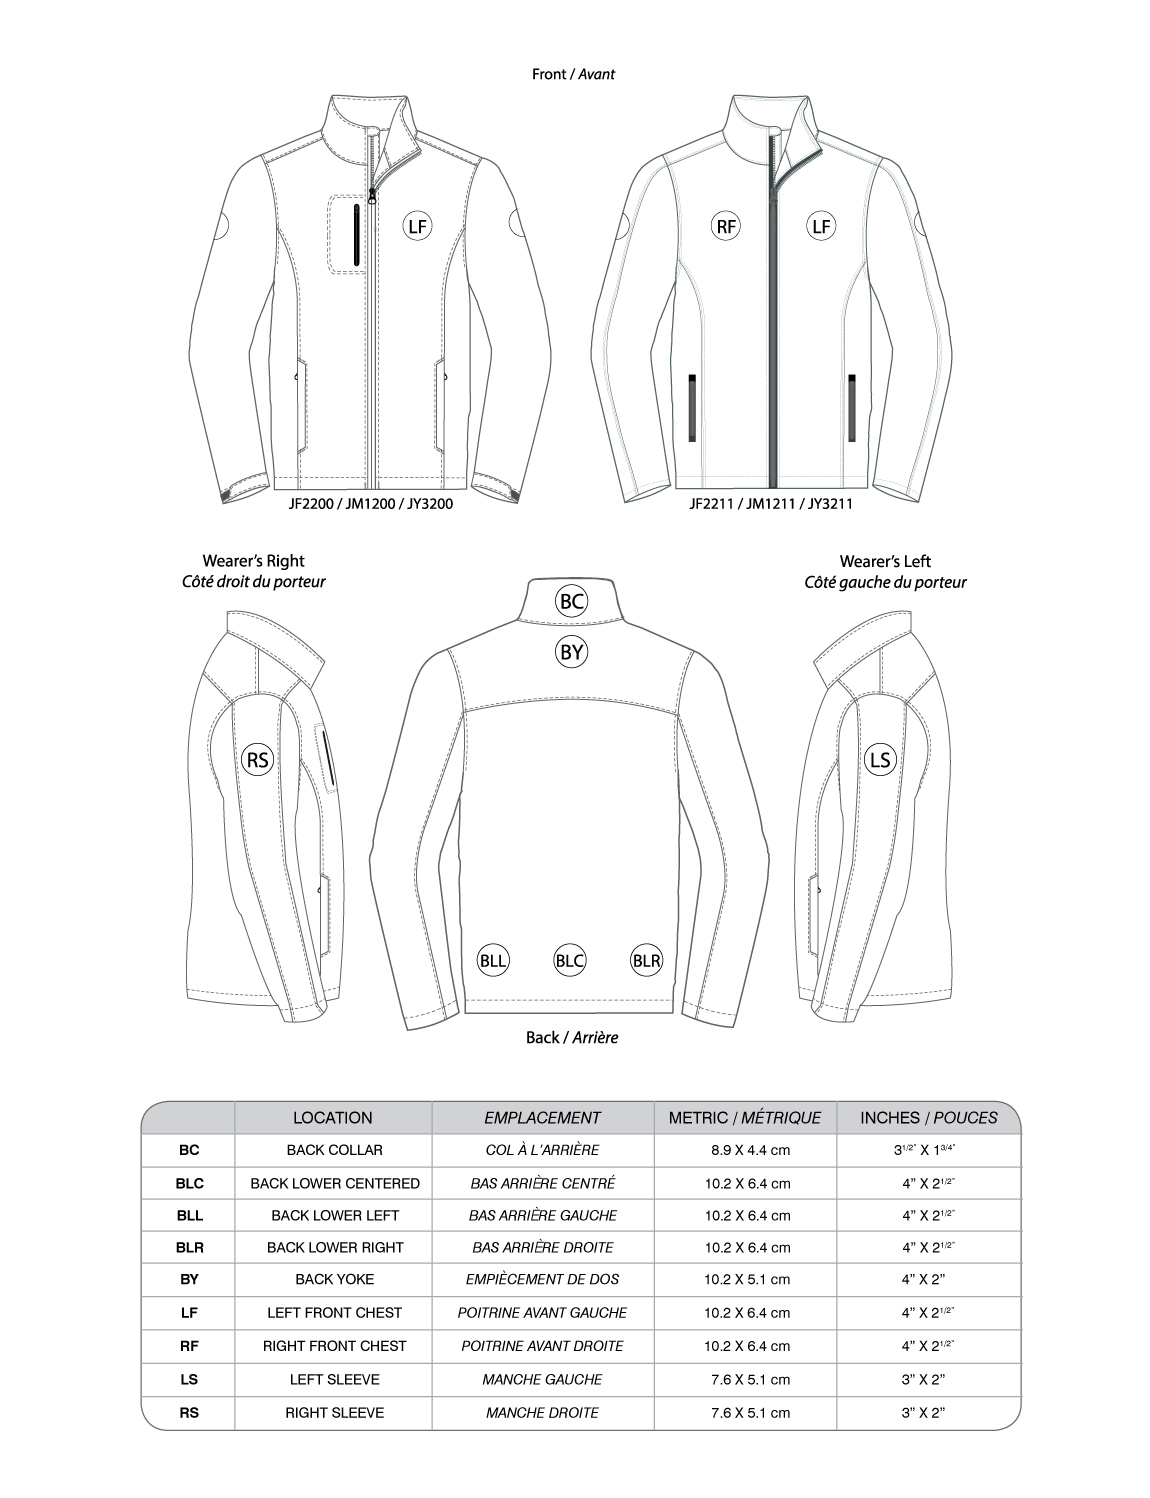 Embroidery Location Chart for Jackets